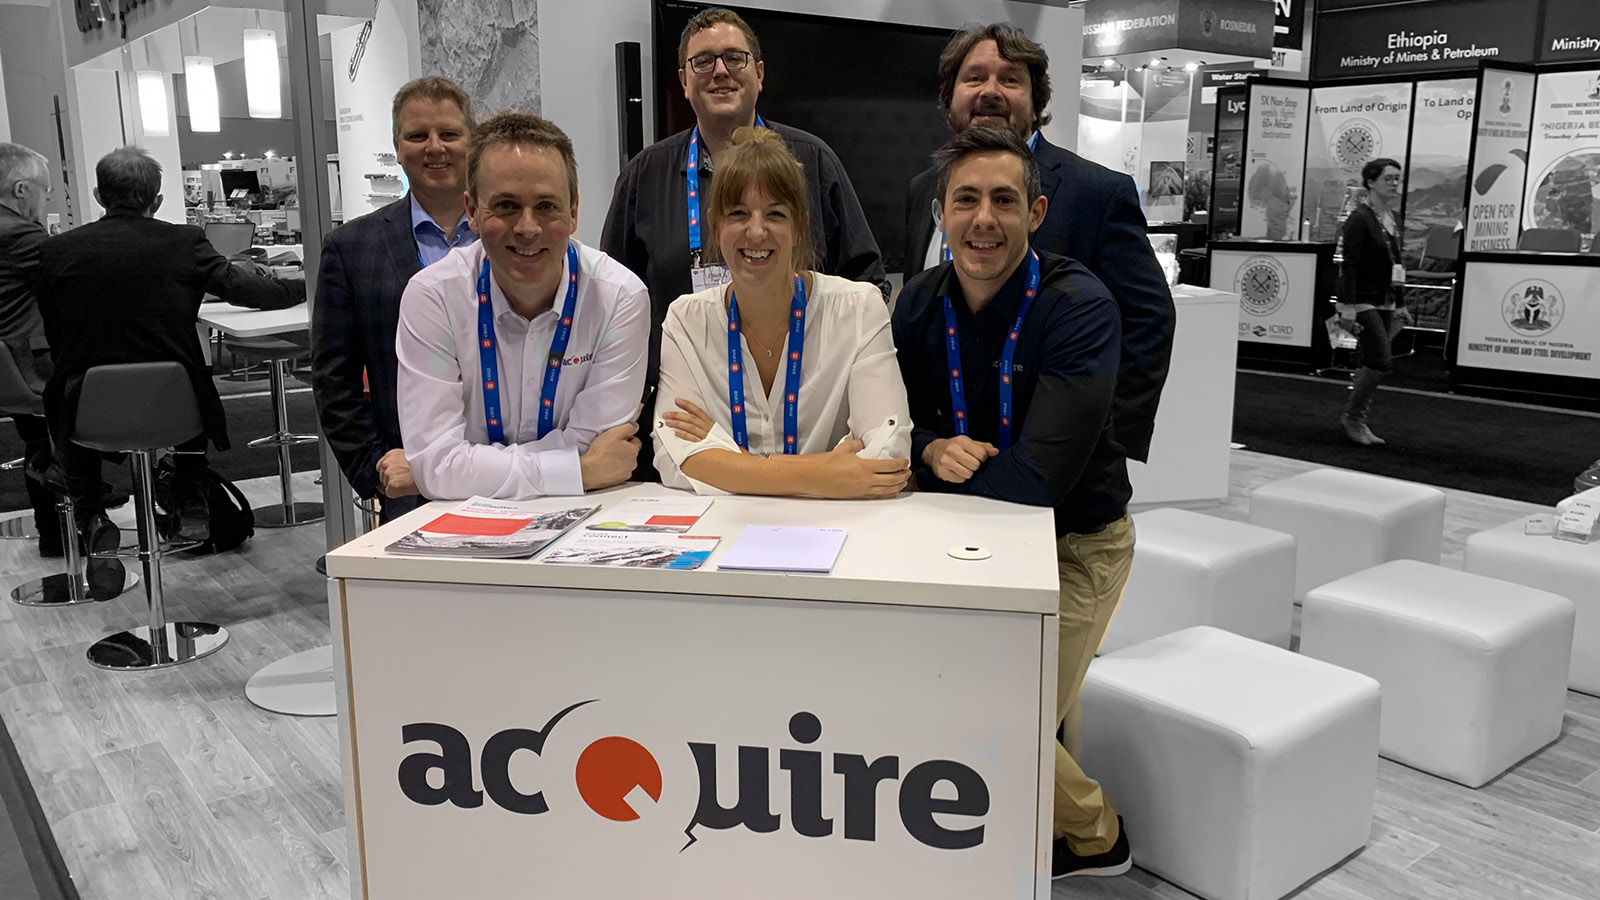 The acQuire team at PDAC convention 2021